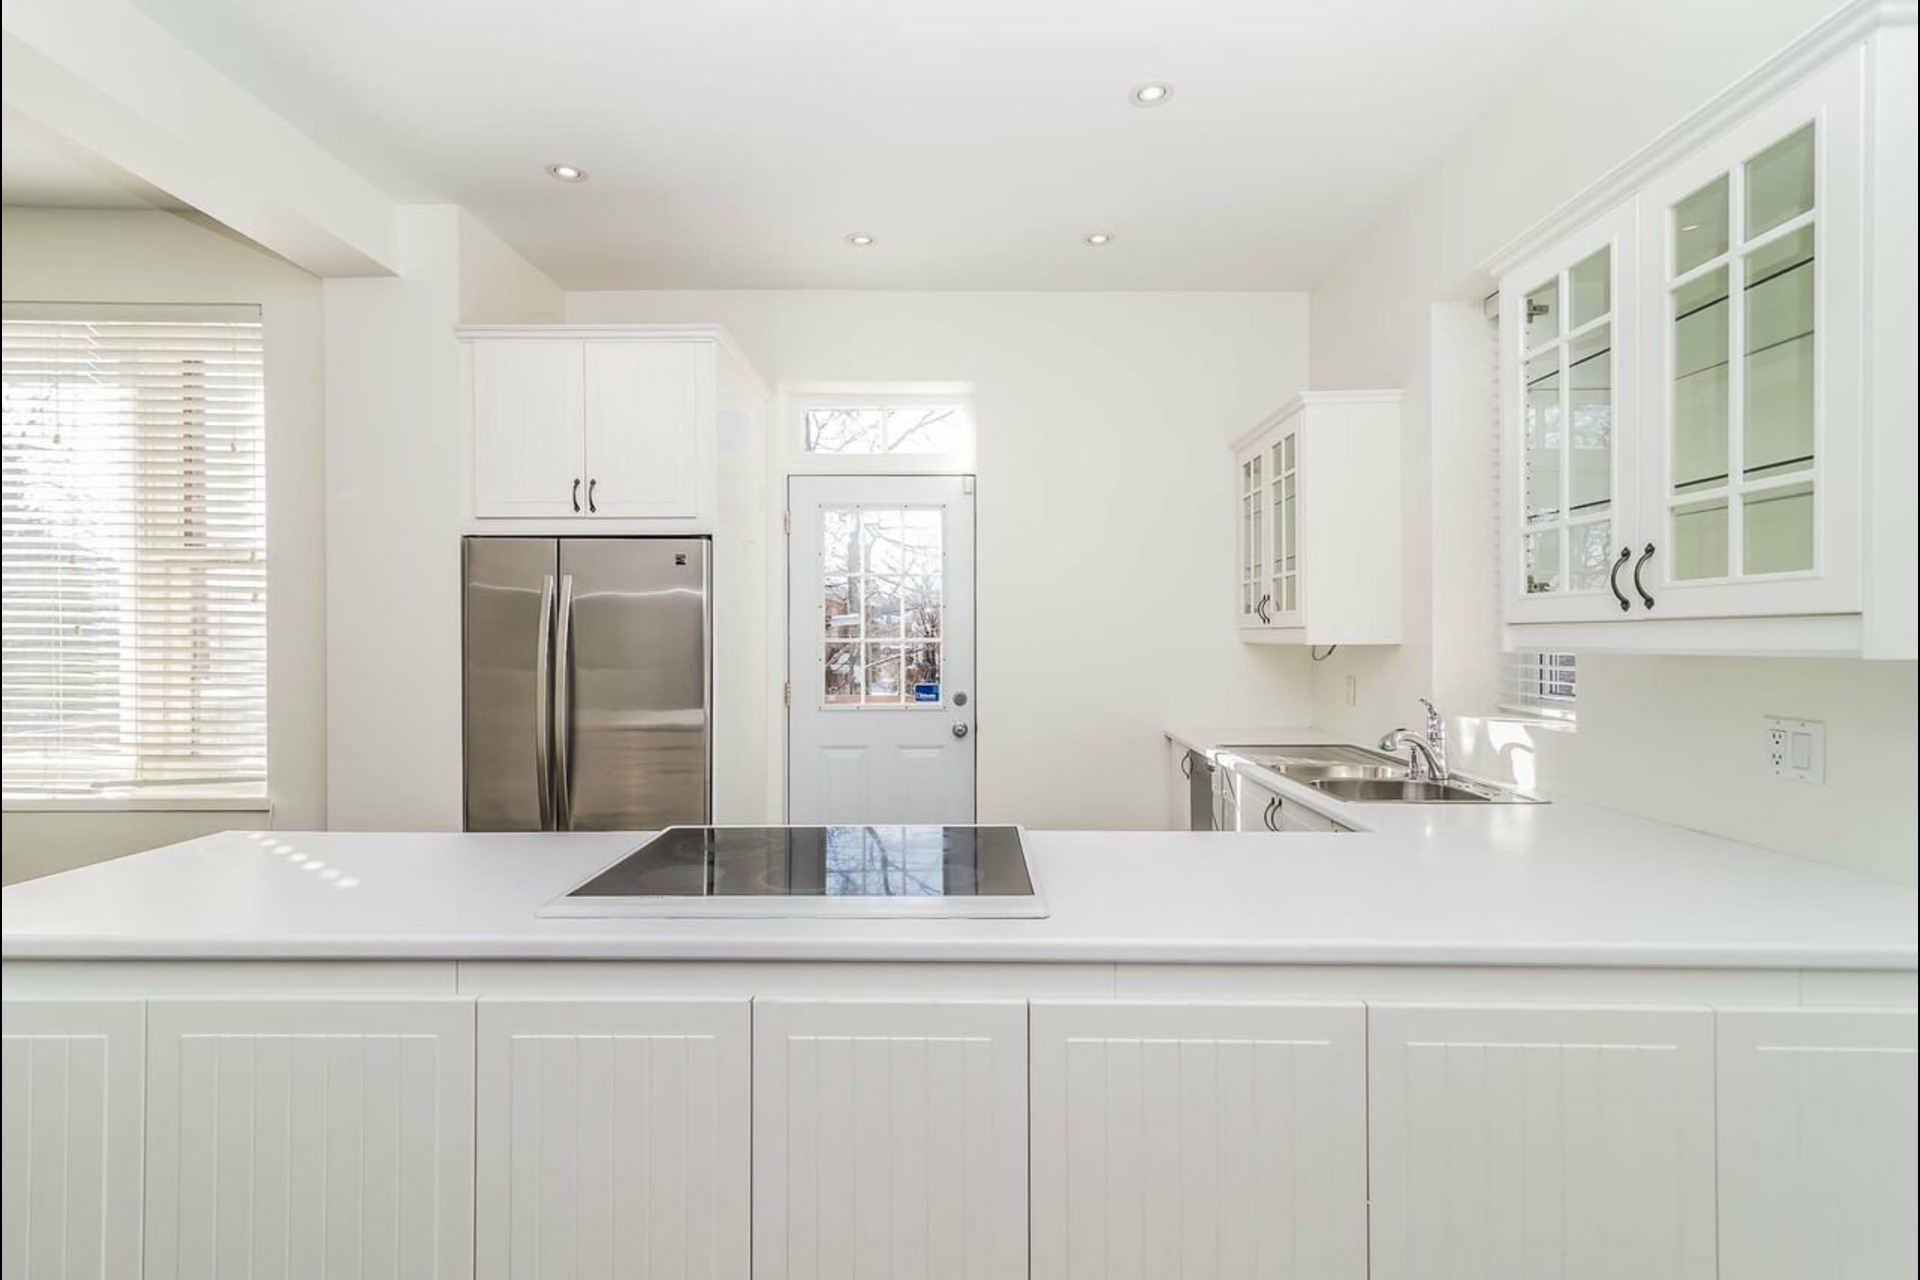 image 13 - House For rent Westmount - 8 rooms